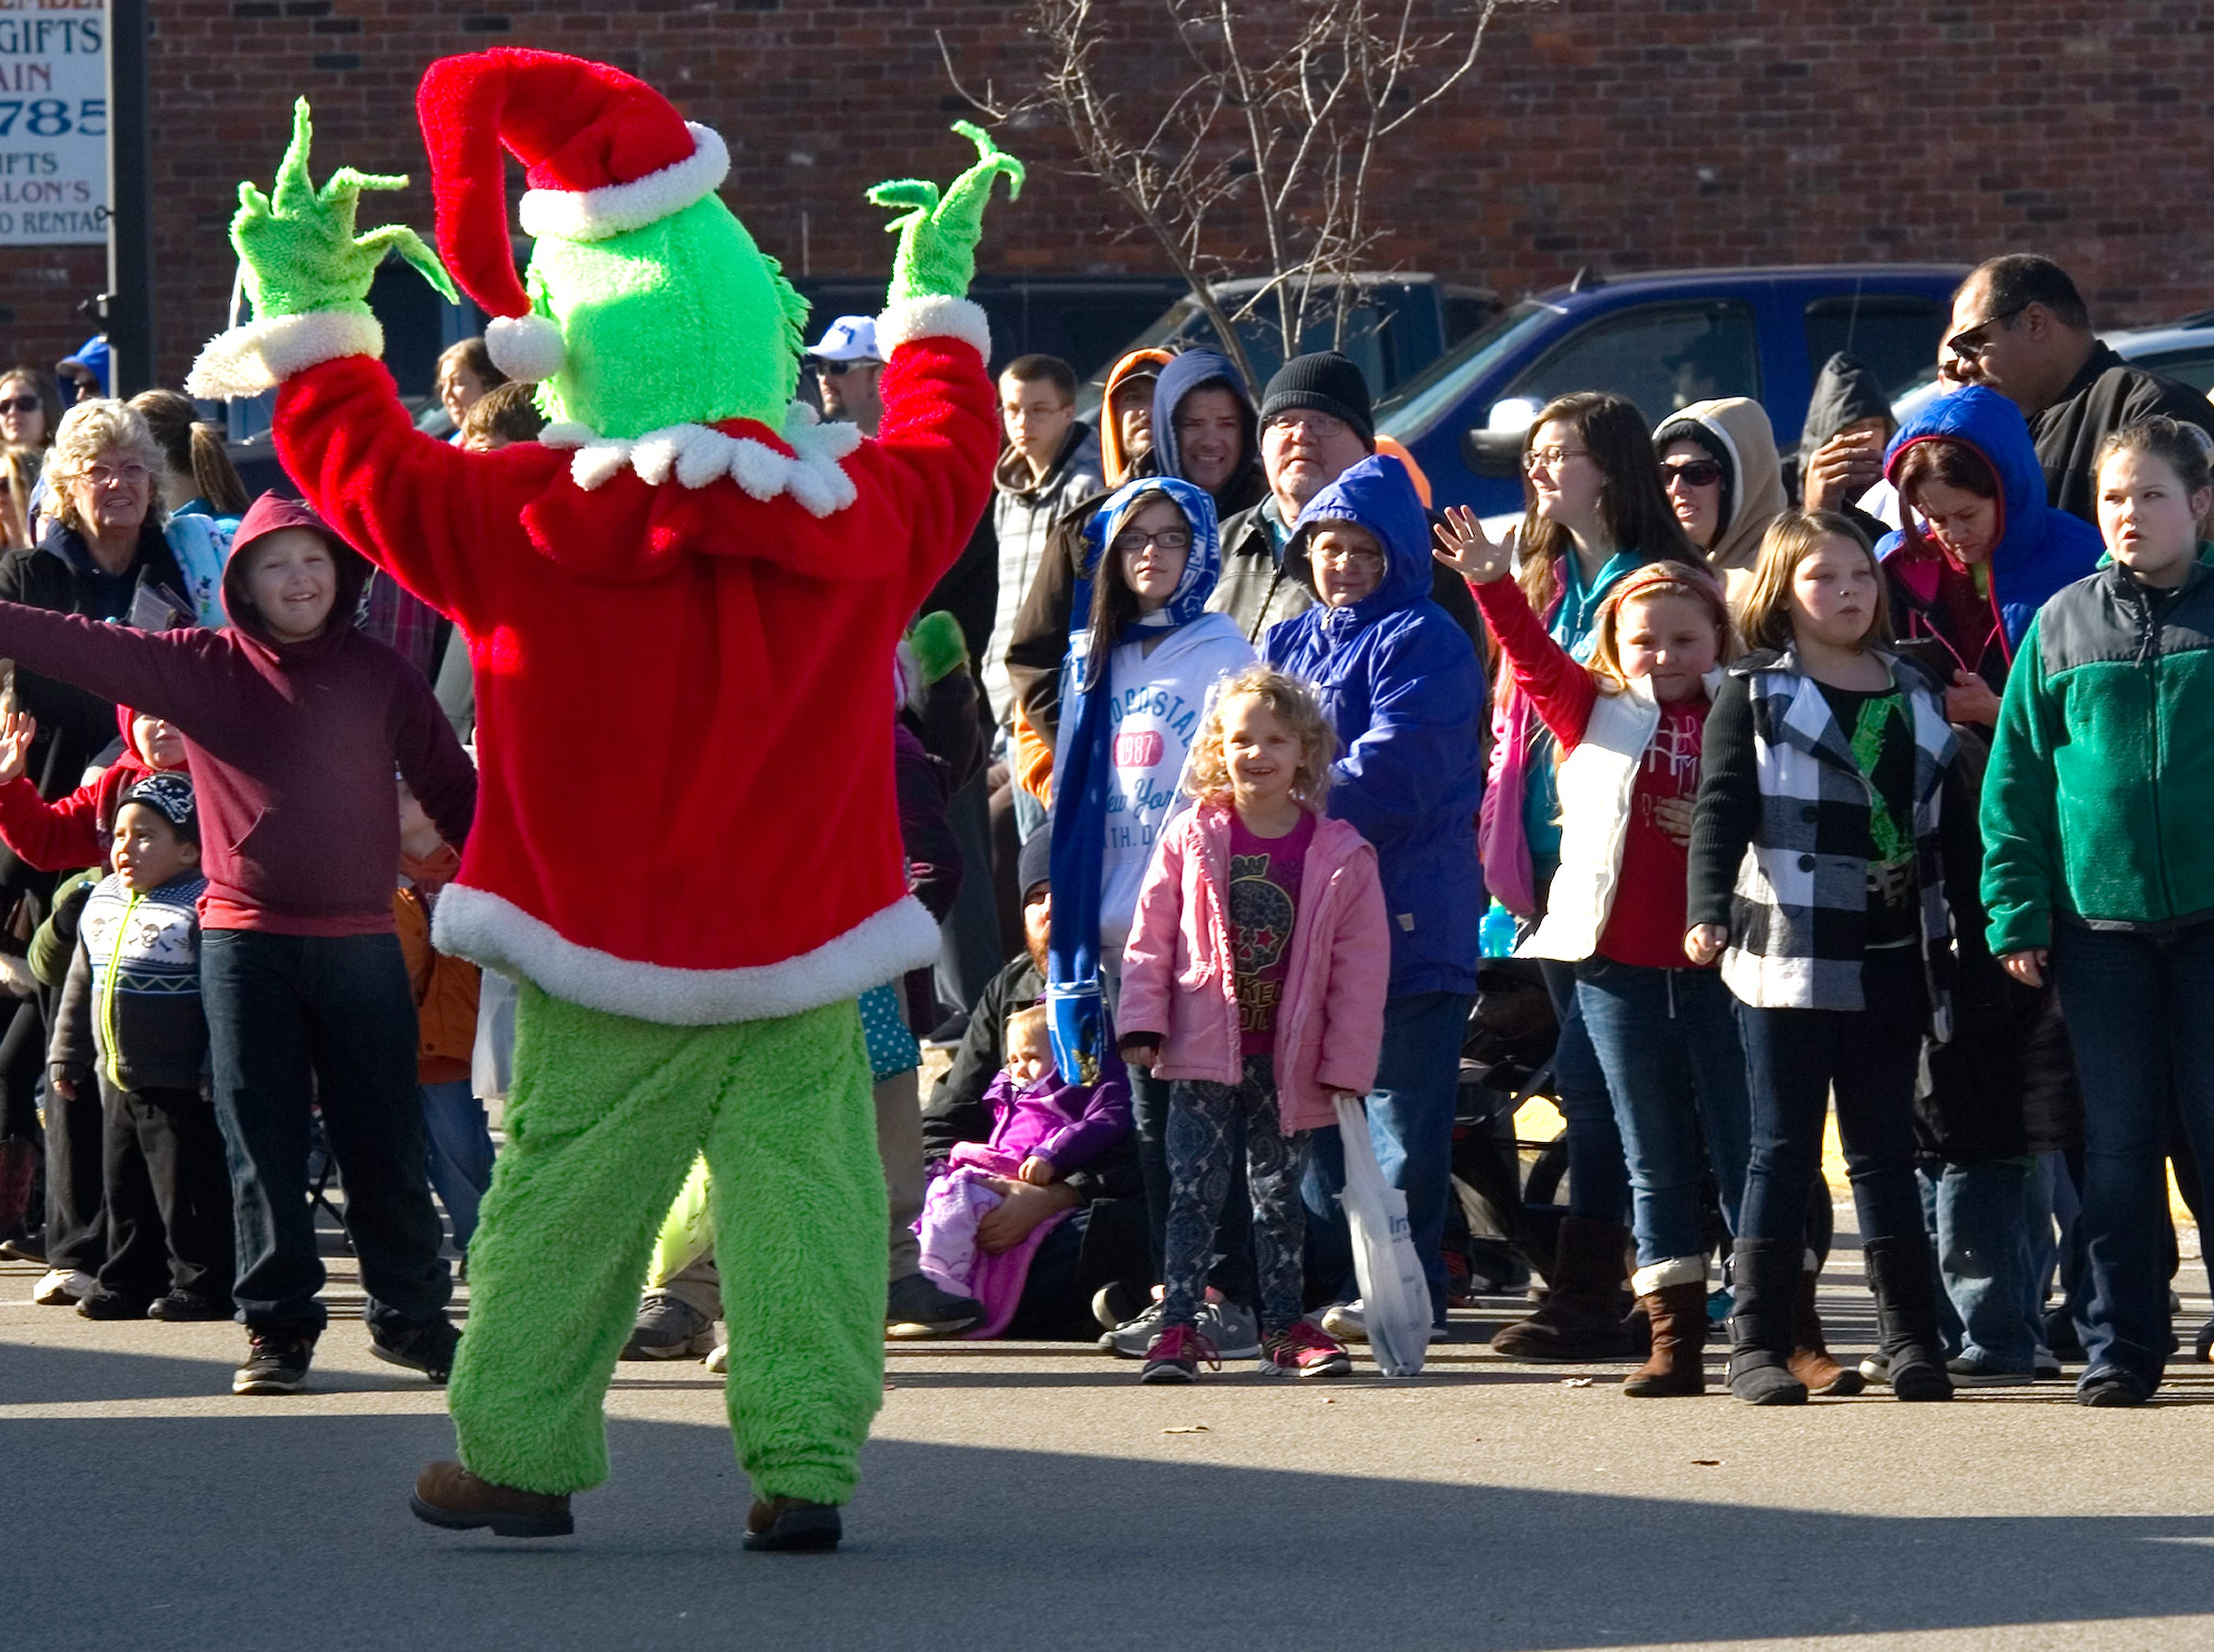 The Grinch, one of the costume characters from Evansville's West Side Nut Club that entertained the crowd, draws different reactions from those lining Main St. during the annual Christmas Parade in Henderson, Ky. on Saturday morning, Dec. 5, 2015.